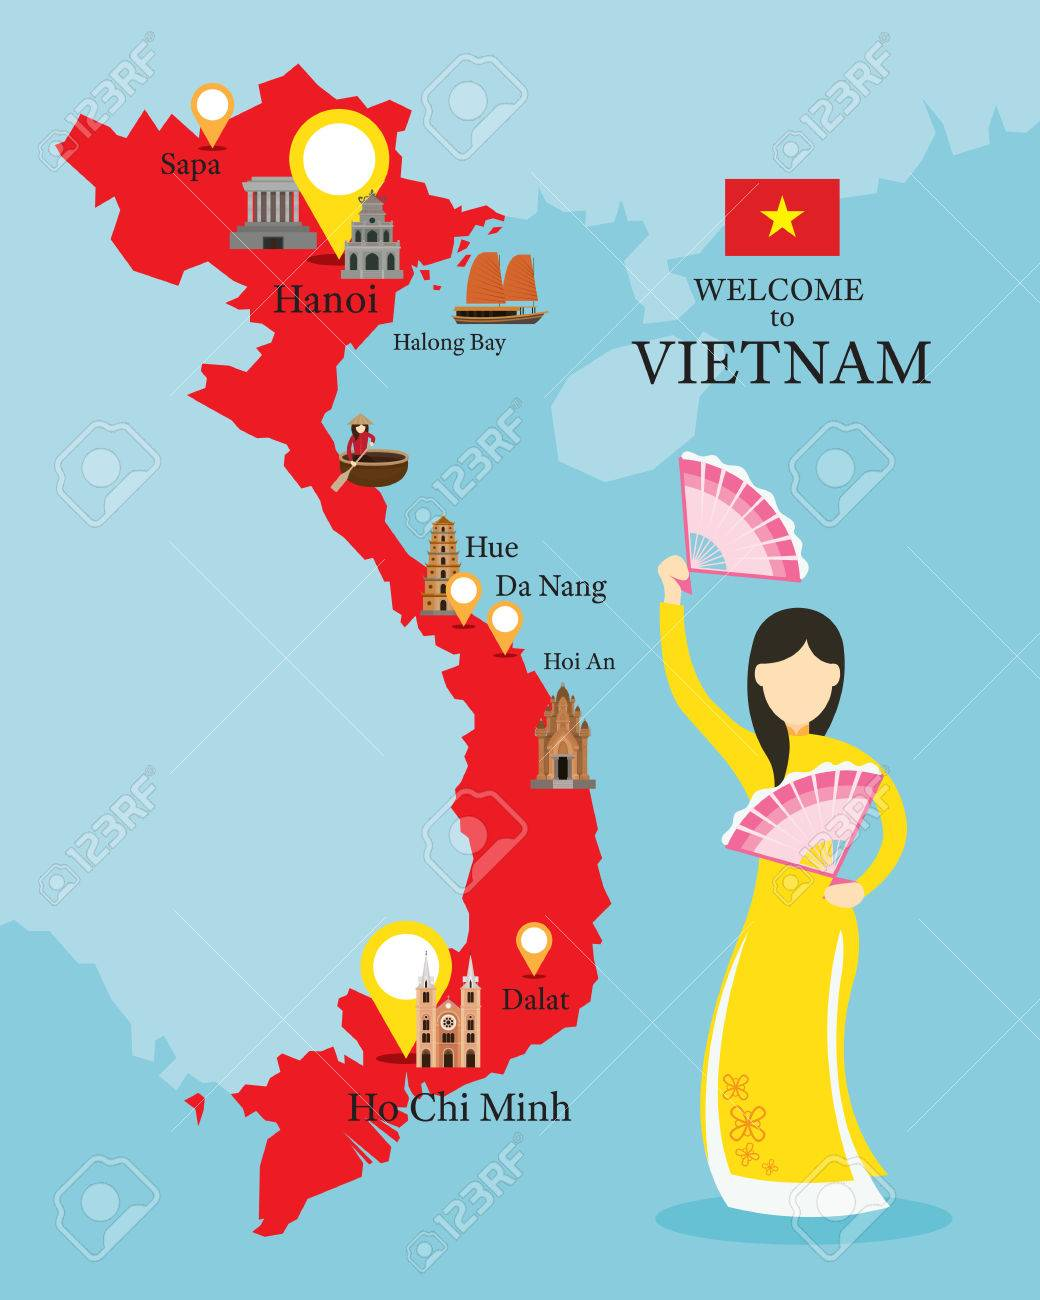 Vietnam Map And Landmarks With People In Traditional Clothing ...